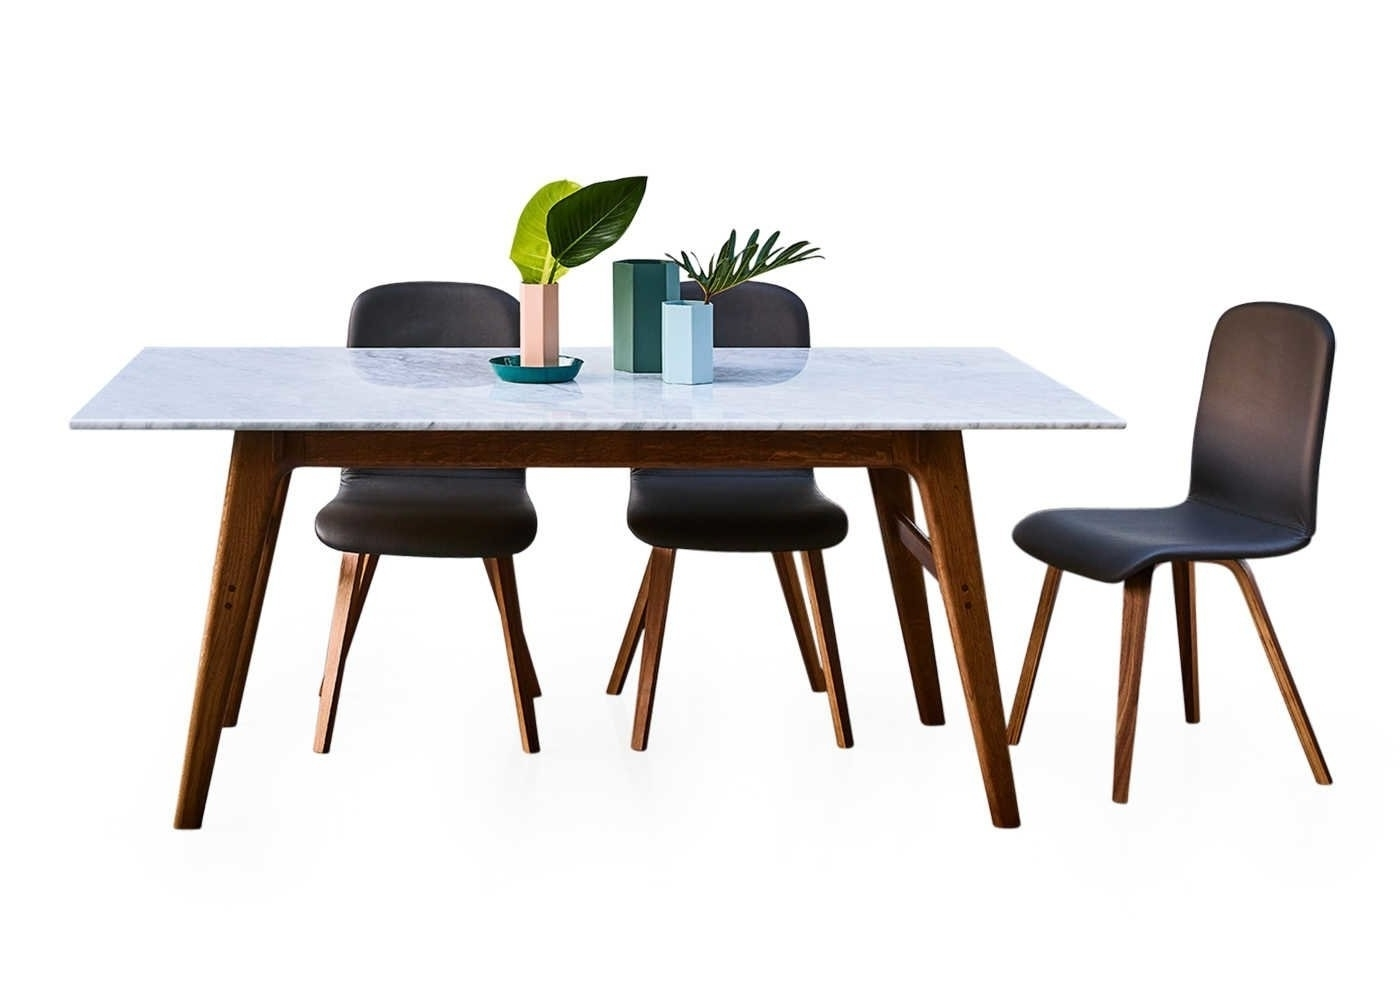 Heal's Intended For Latest Marble Effect Dining Tables And Chairs (Gallery 24 of 25)